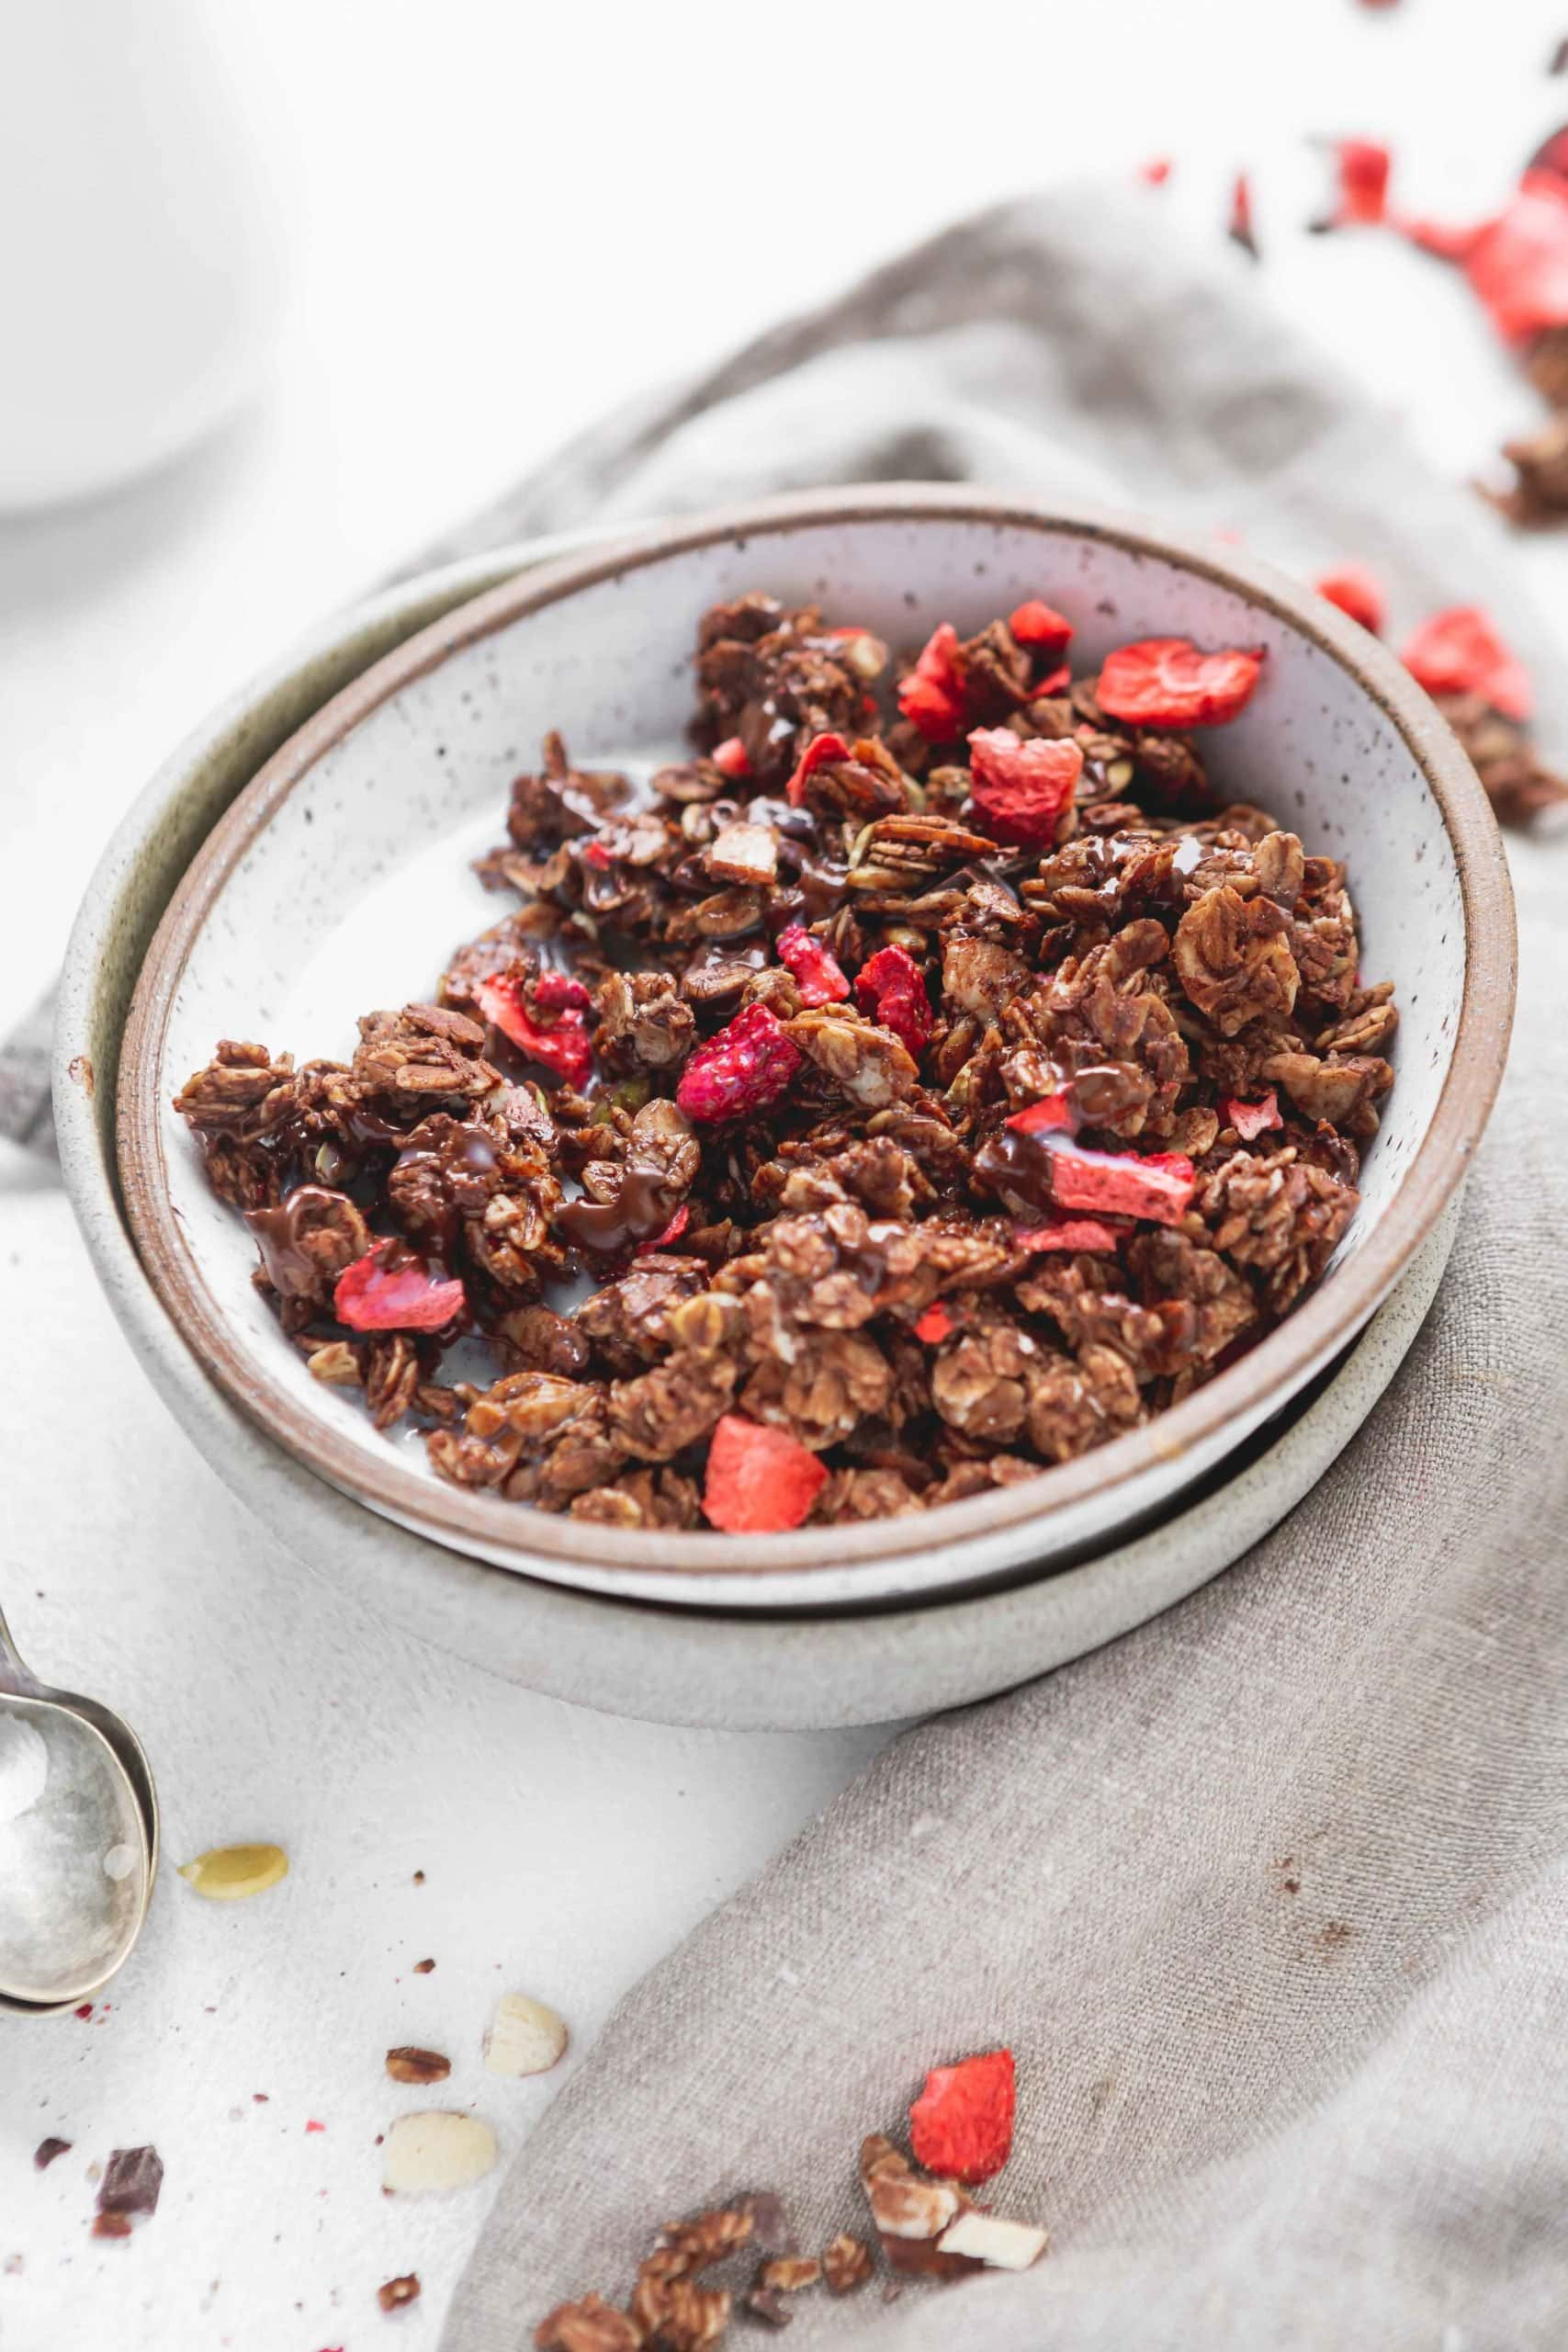 A bowl of chocolate lovers granola with chunks of chocolate and strawberries.